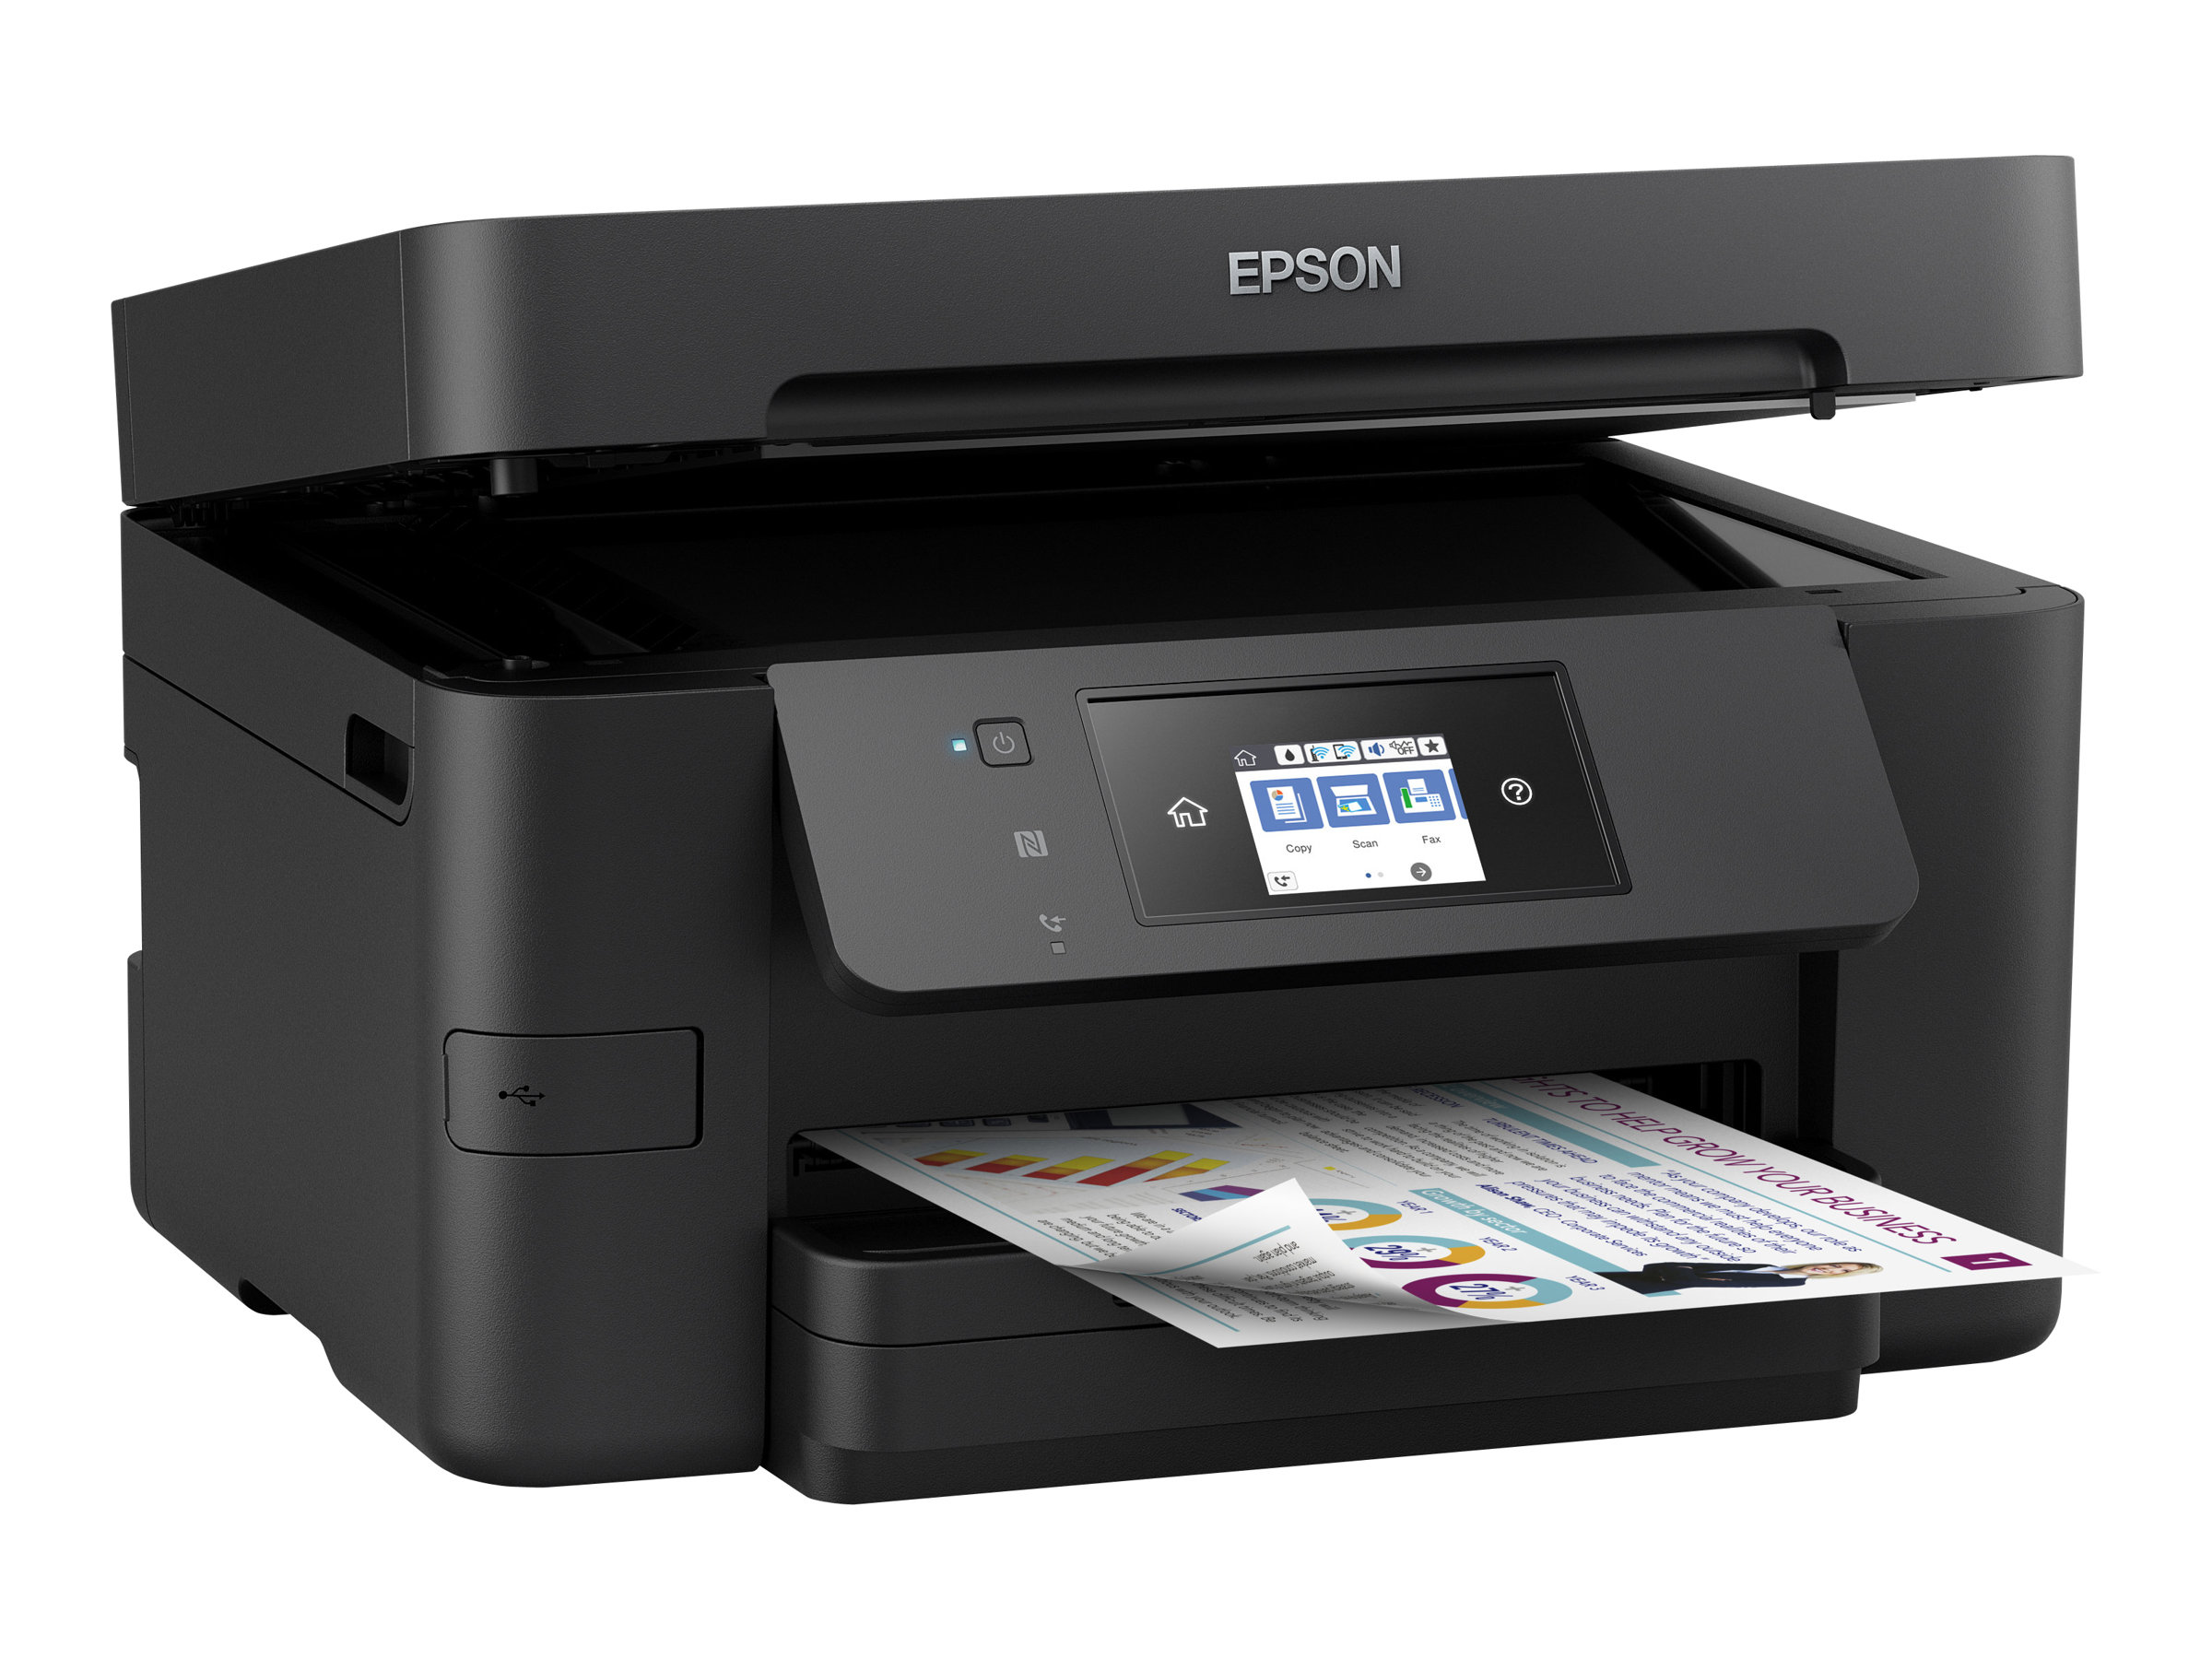 Imprimante EPSON WorkForce Pro WF 4720 DWF vue 3/4 gauche